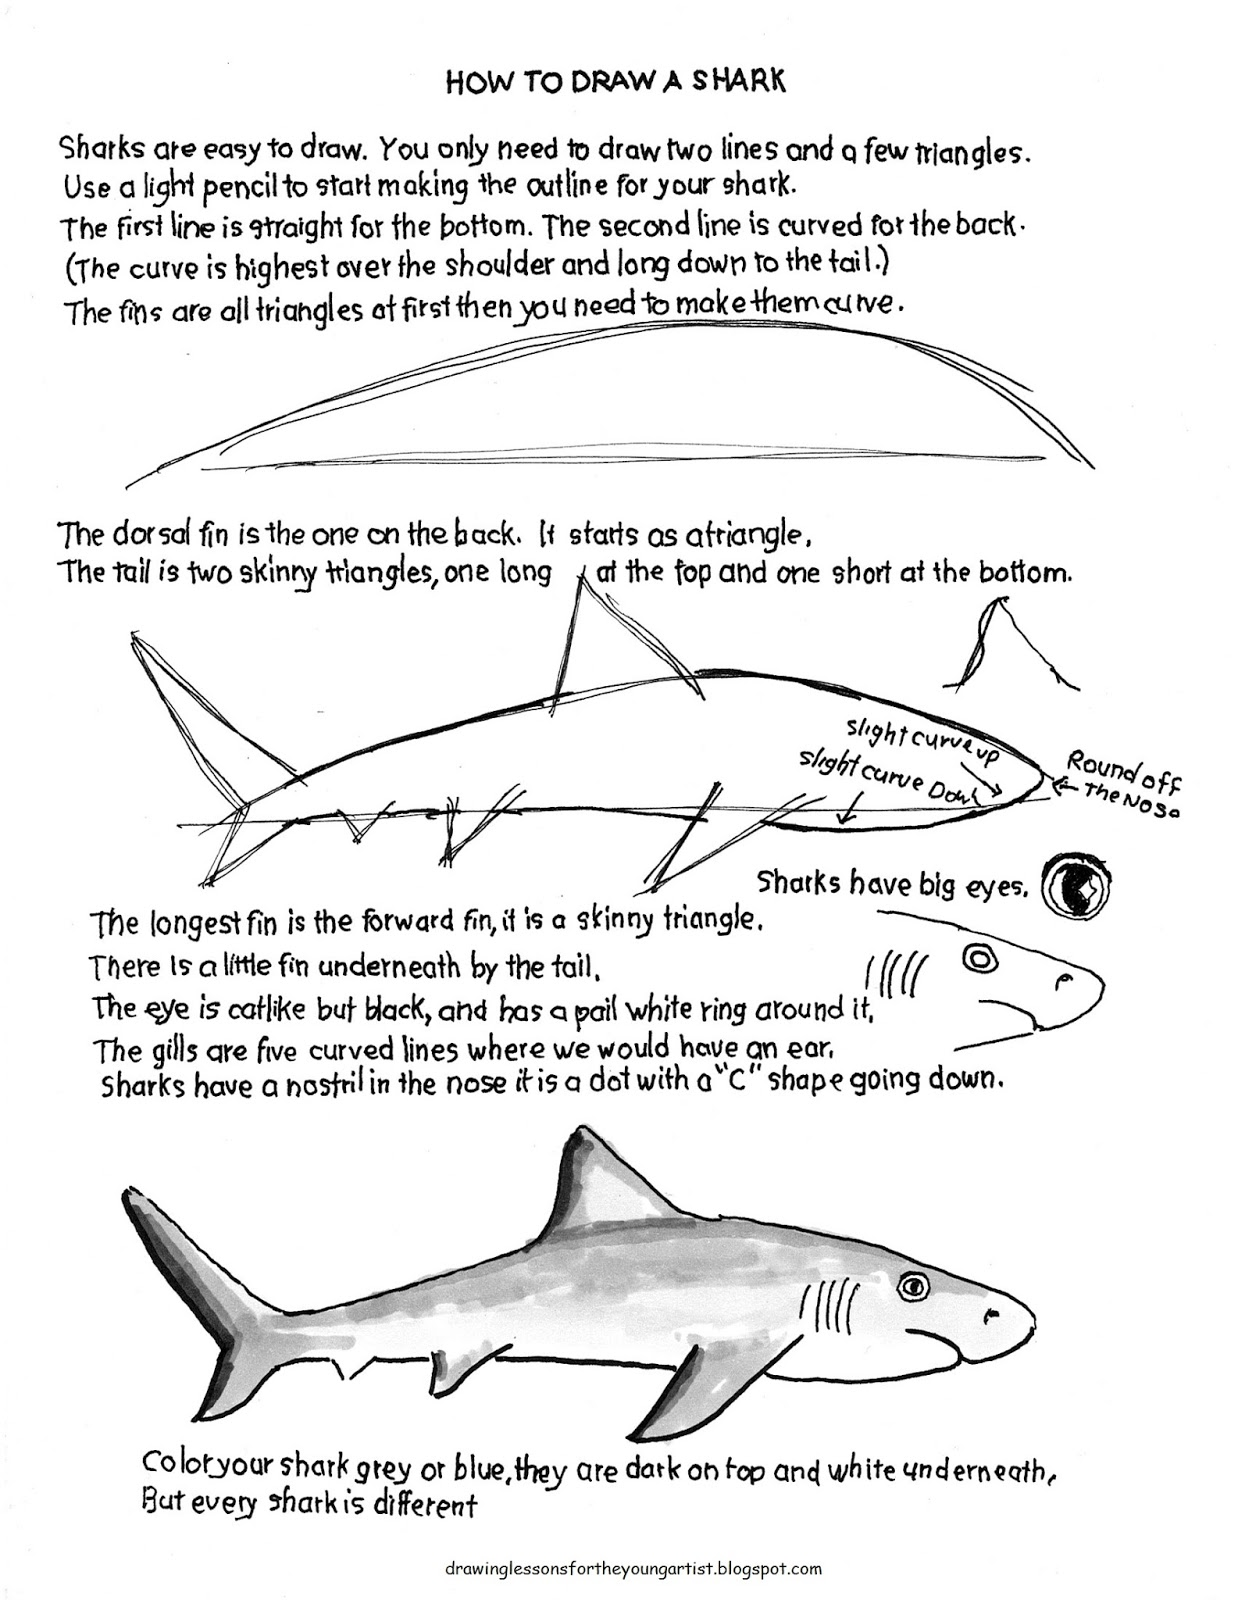 how to draw worksheets for the young artist how to draw a shark easy worksheet. Black Bedroom Furniture Sets. Home Design Ideas